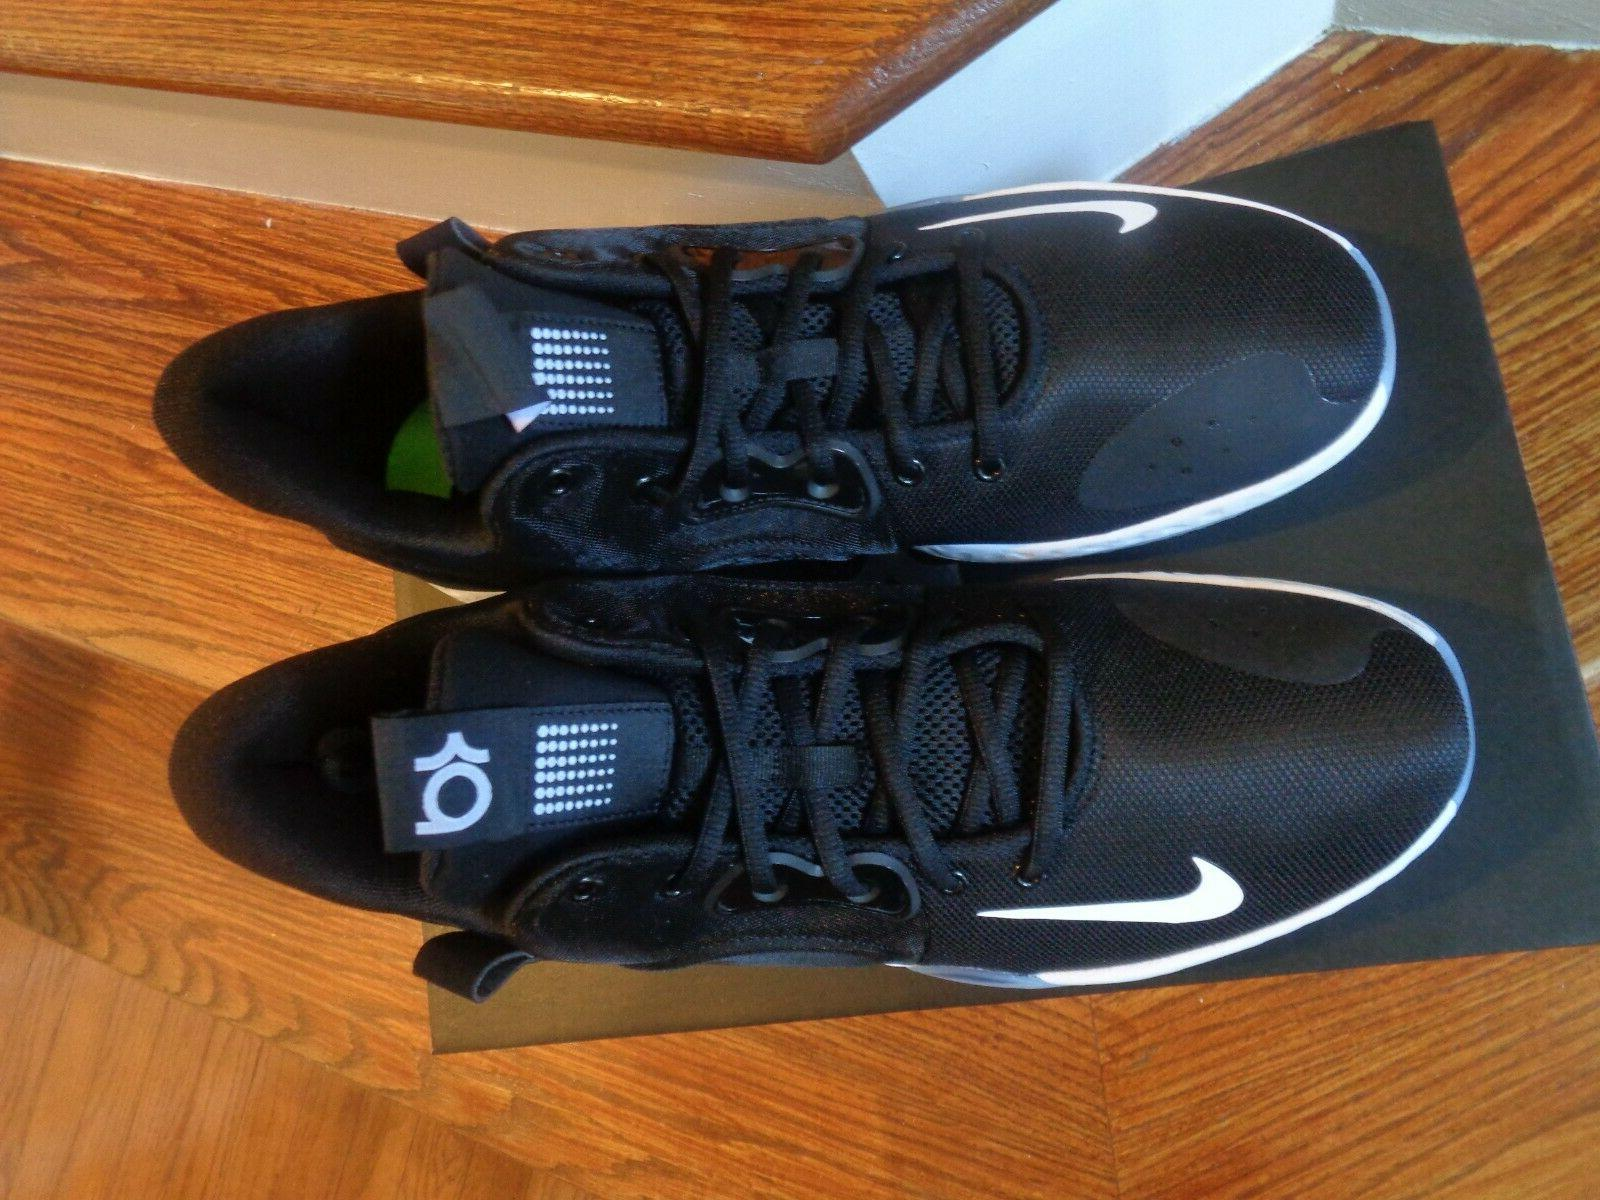 Nike KD 5 VII Men's Basketball Shoes, AT1200 10 NWB